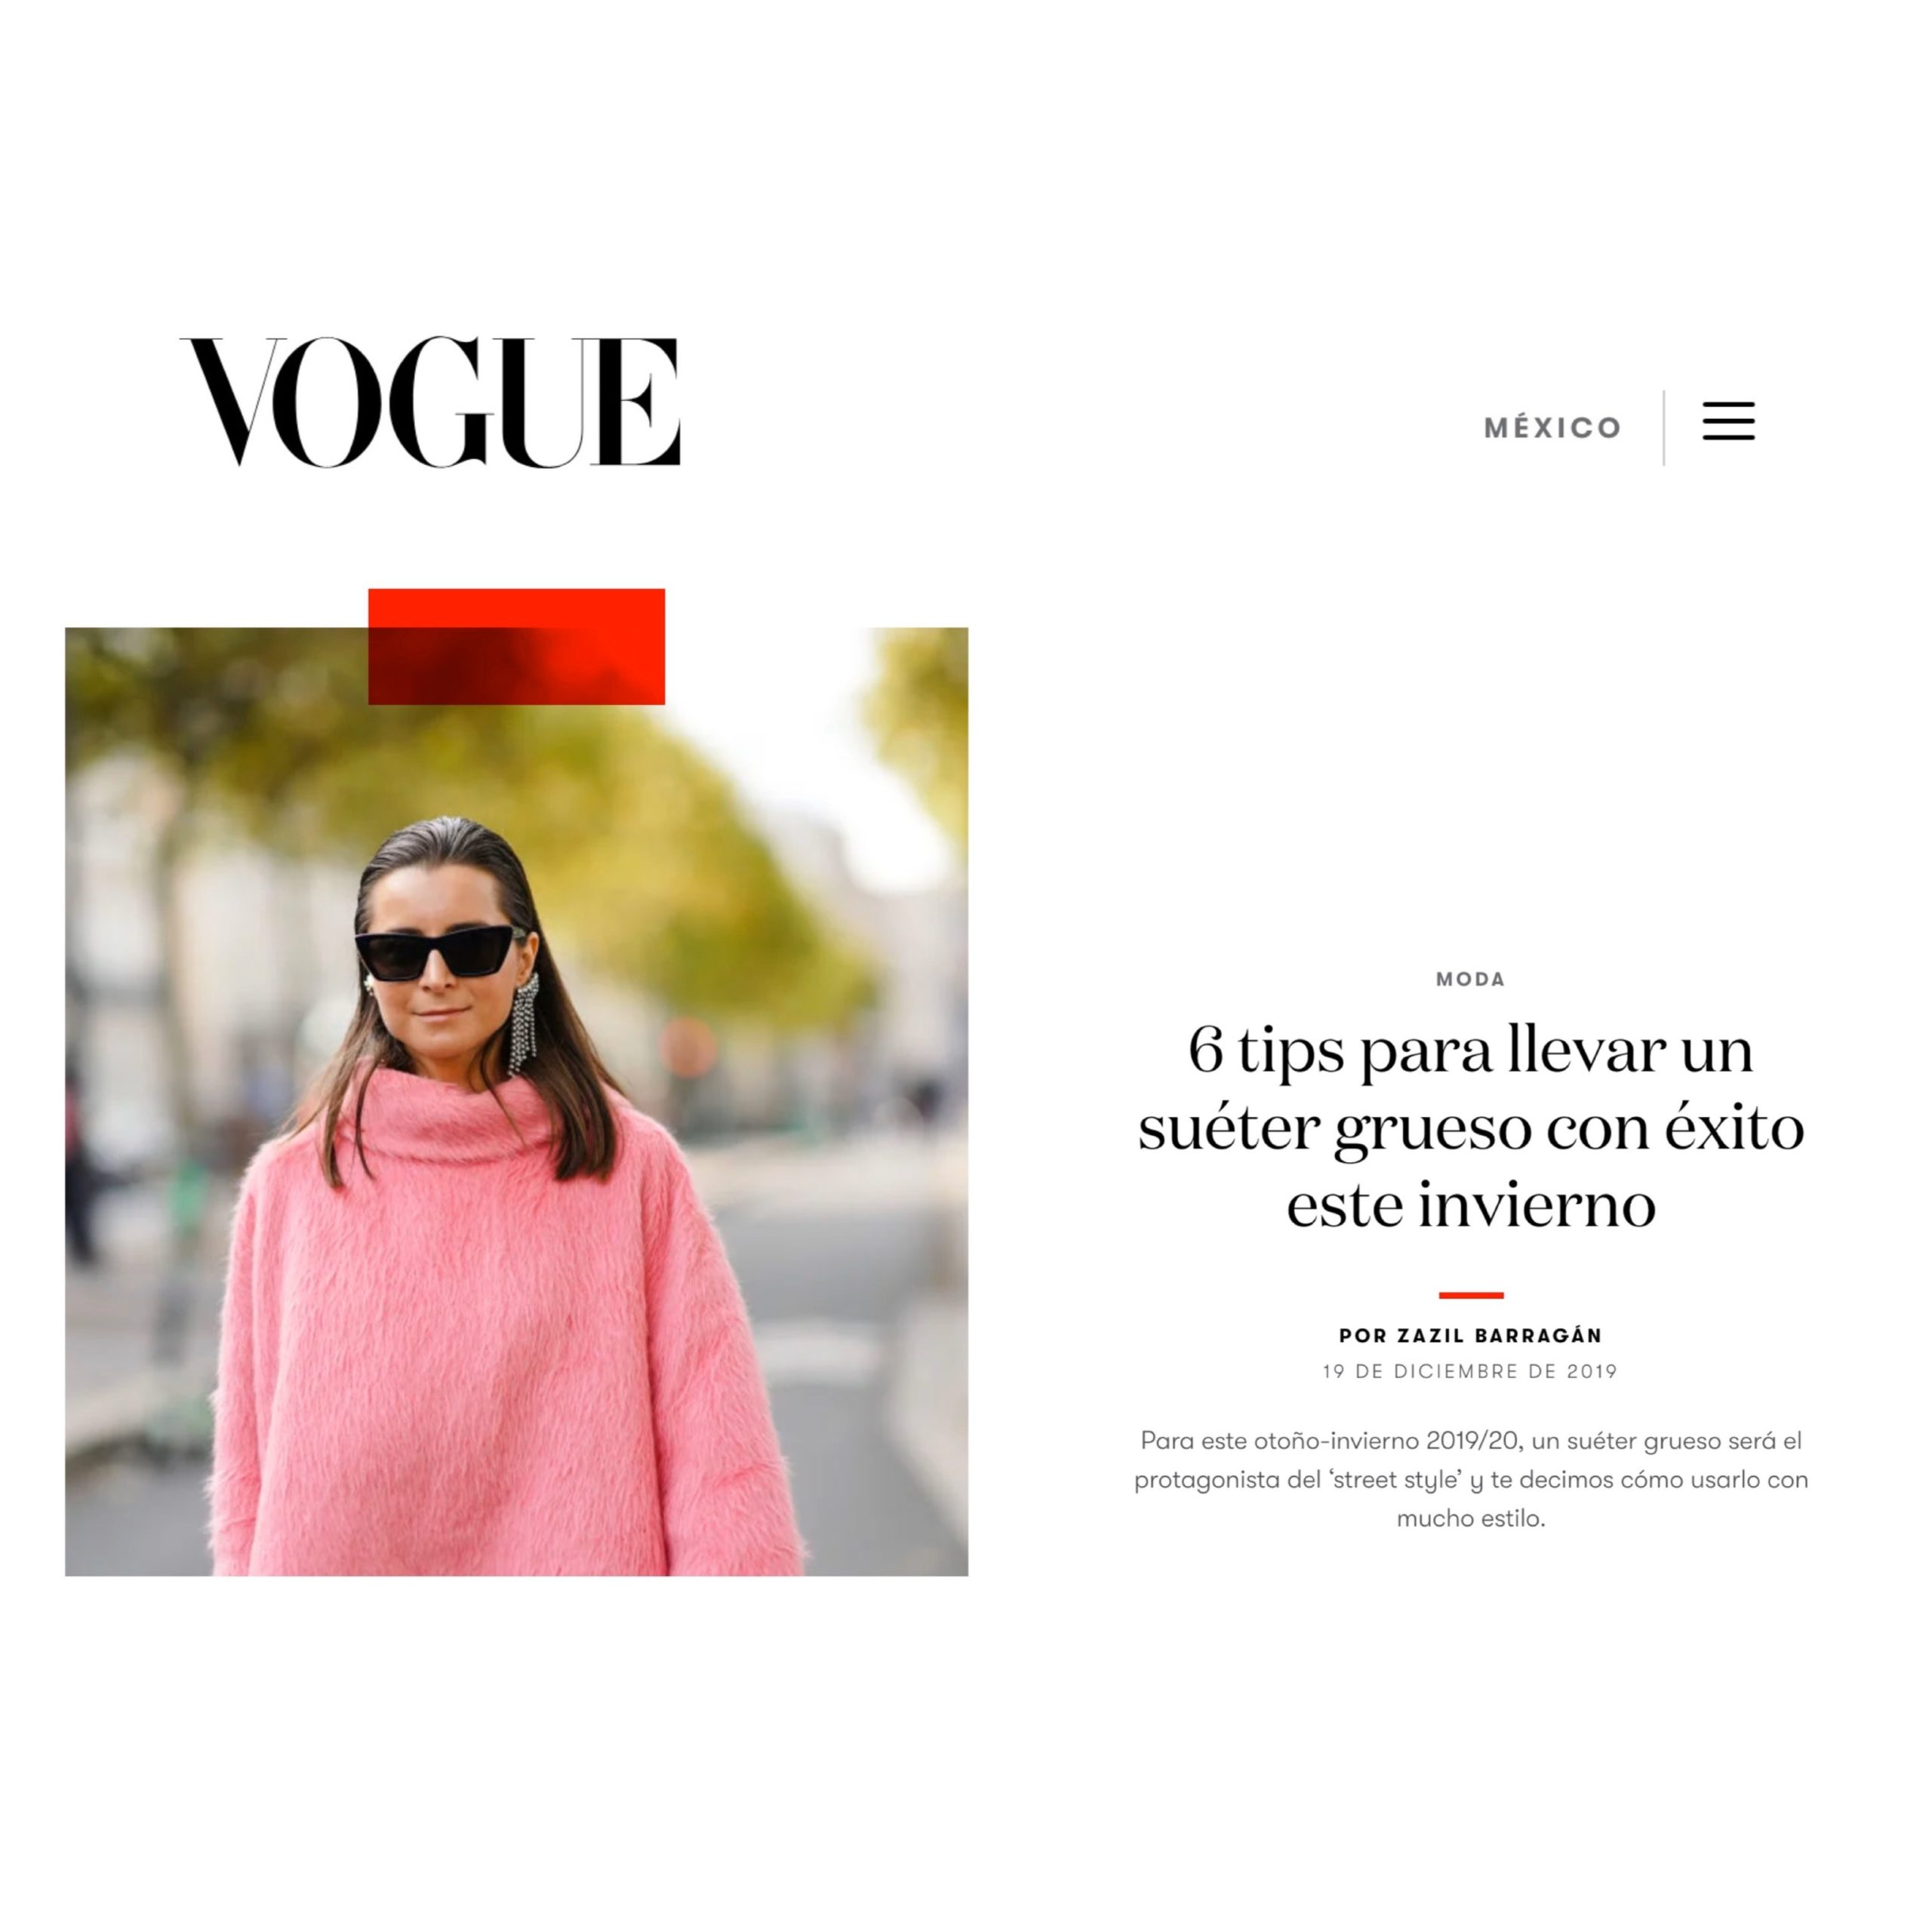 Vogue Mexico Julia Comil French Fashion Influencer